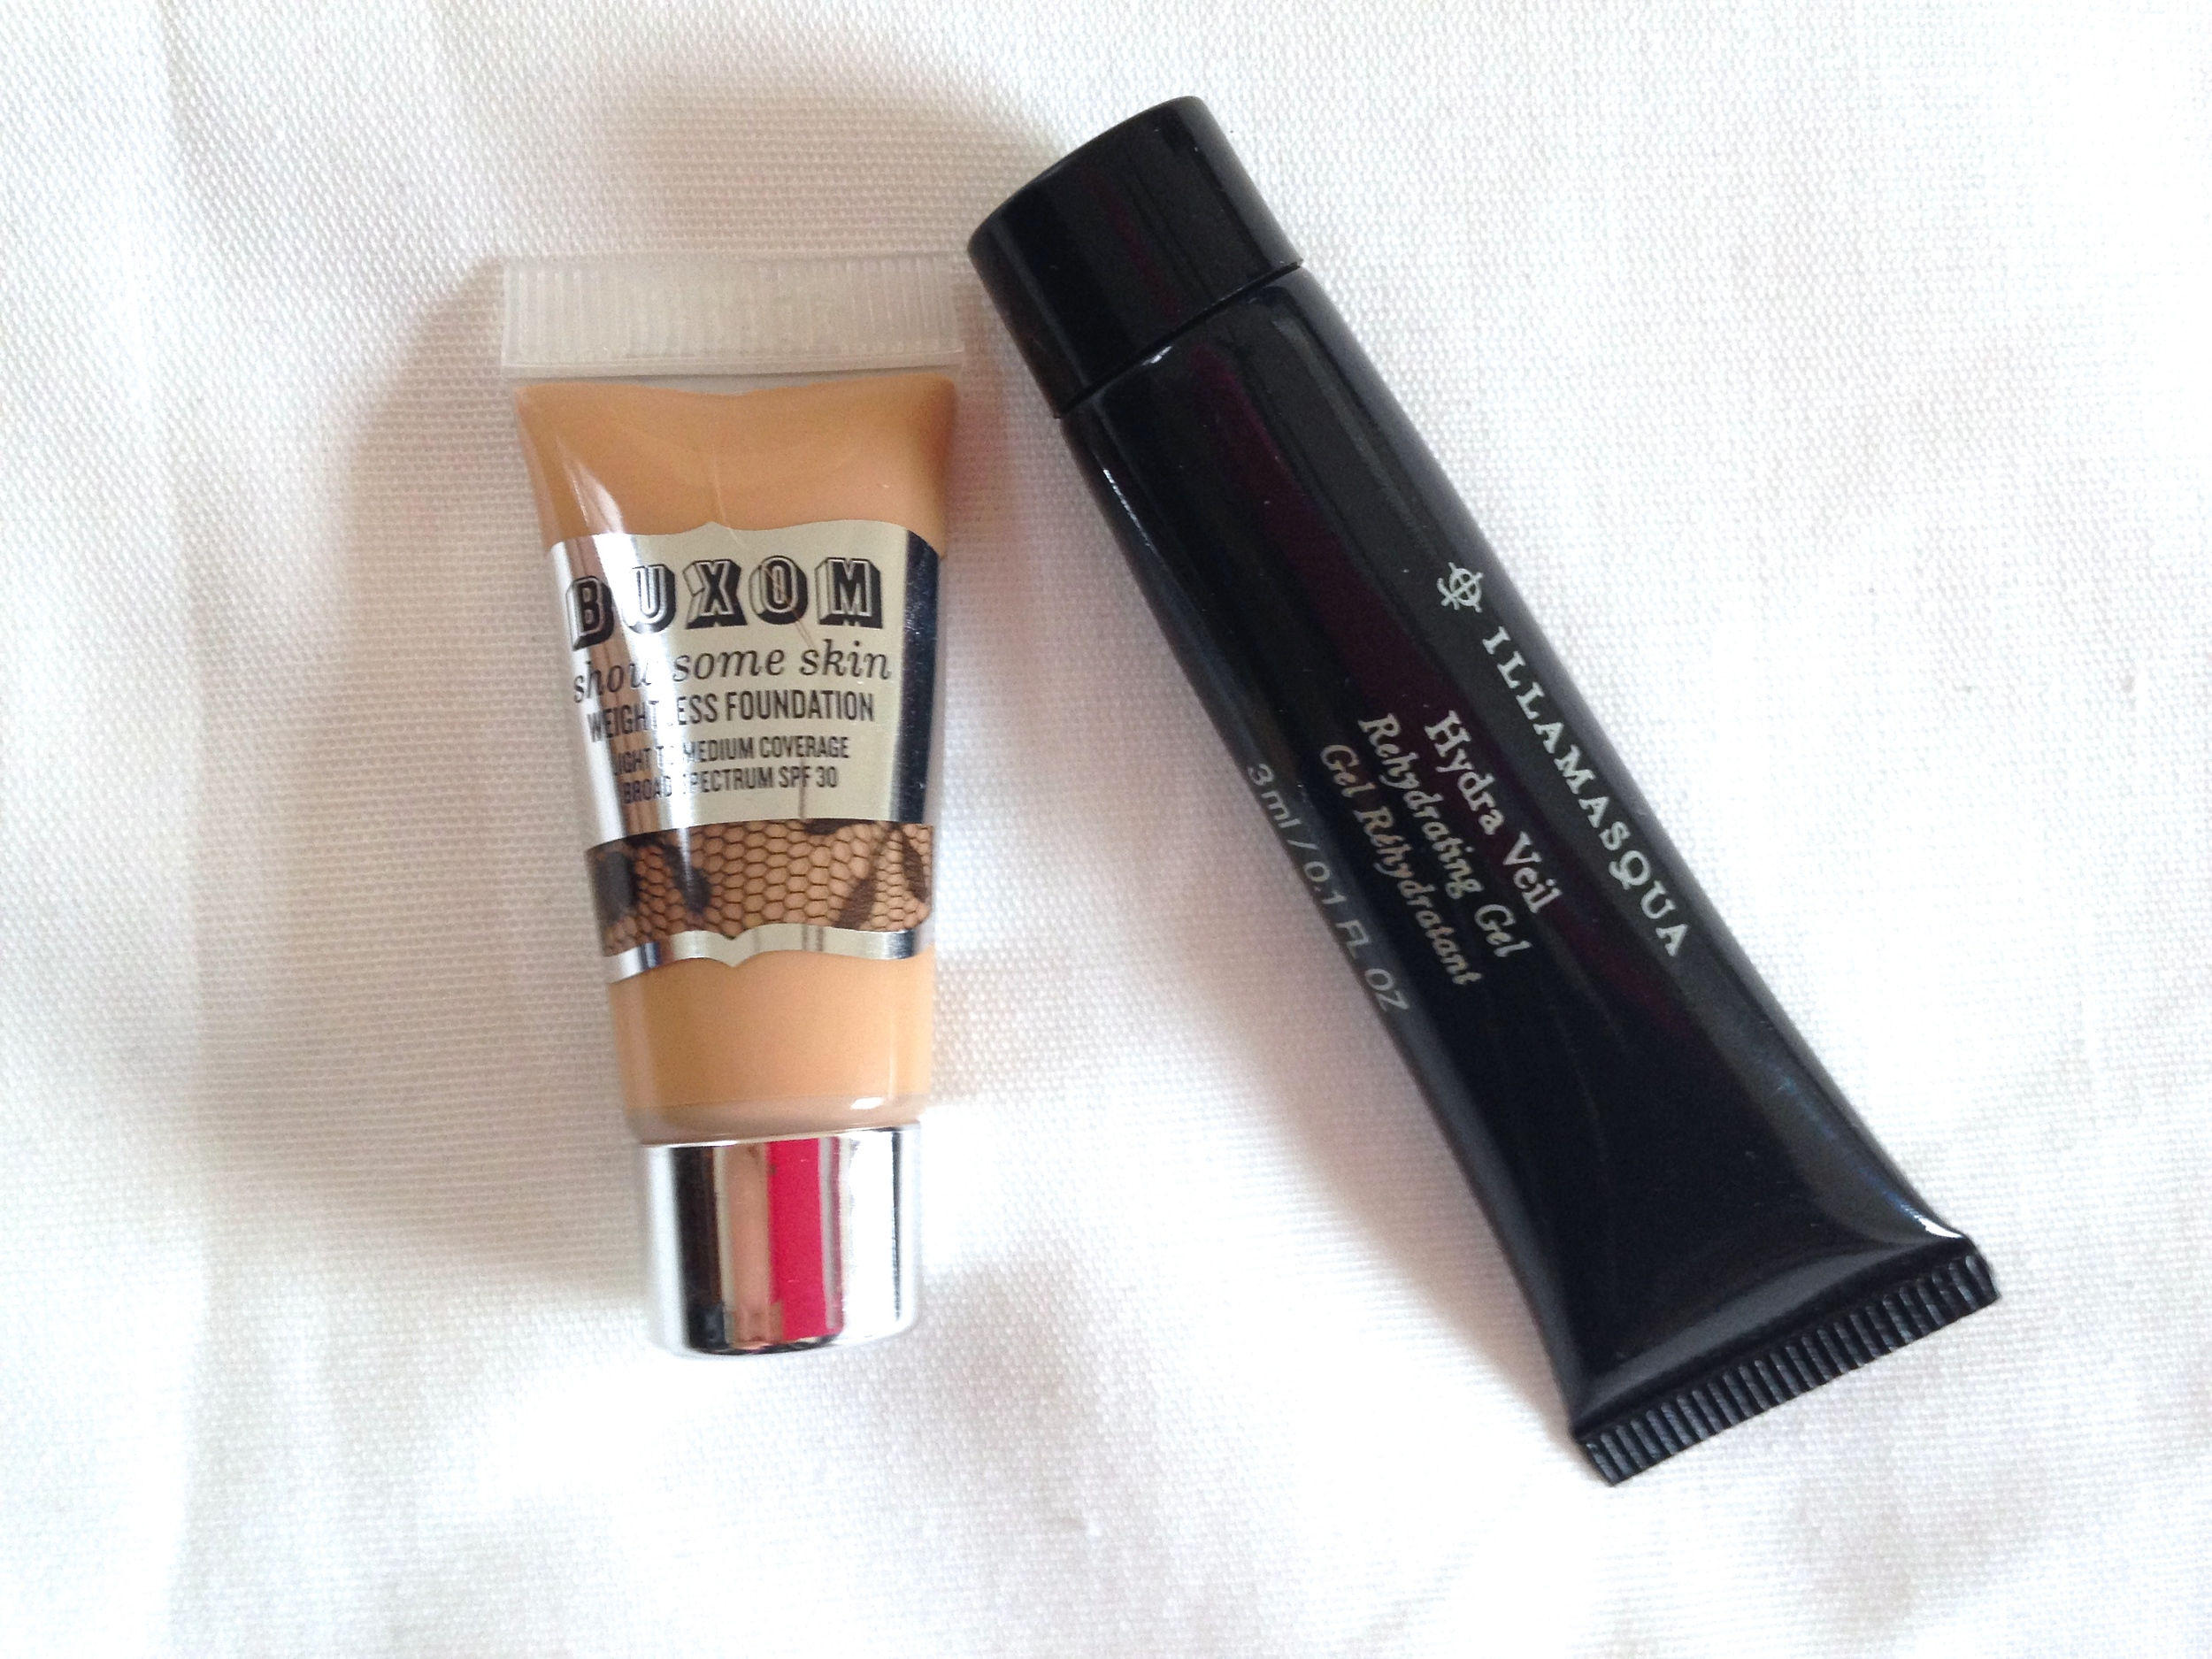 Buxom Show Some Skin Weightless Foundation review, Illamasqua Hydra Veil review